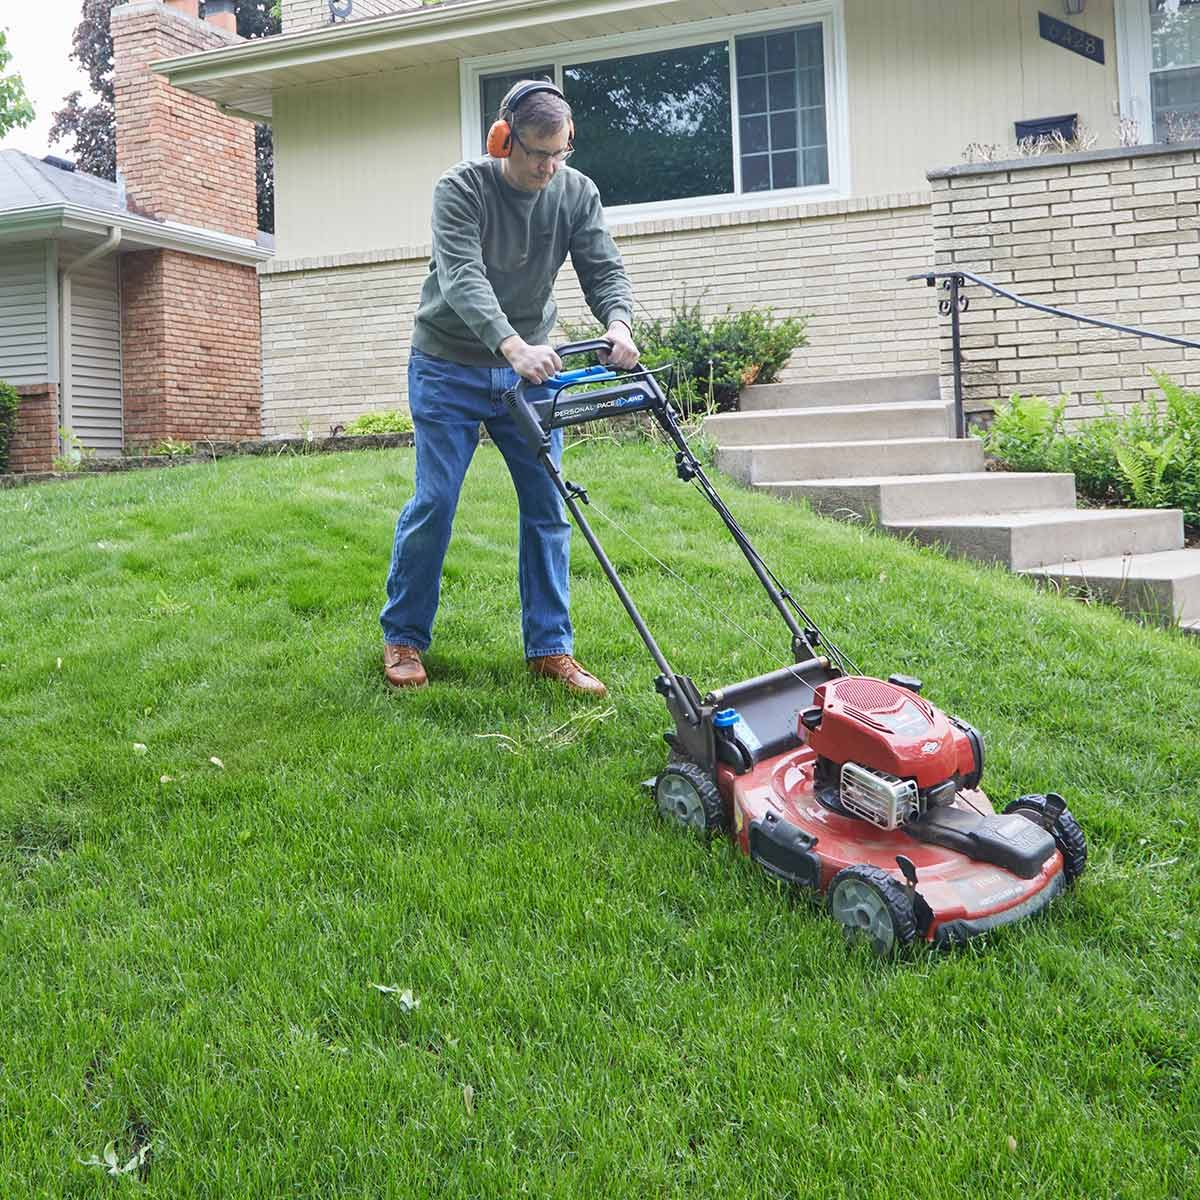 Great mower for hilly yards